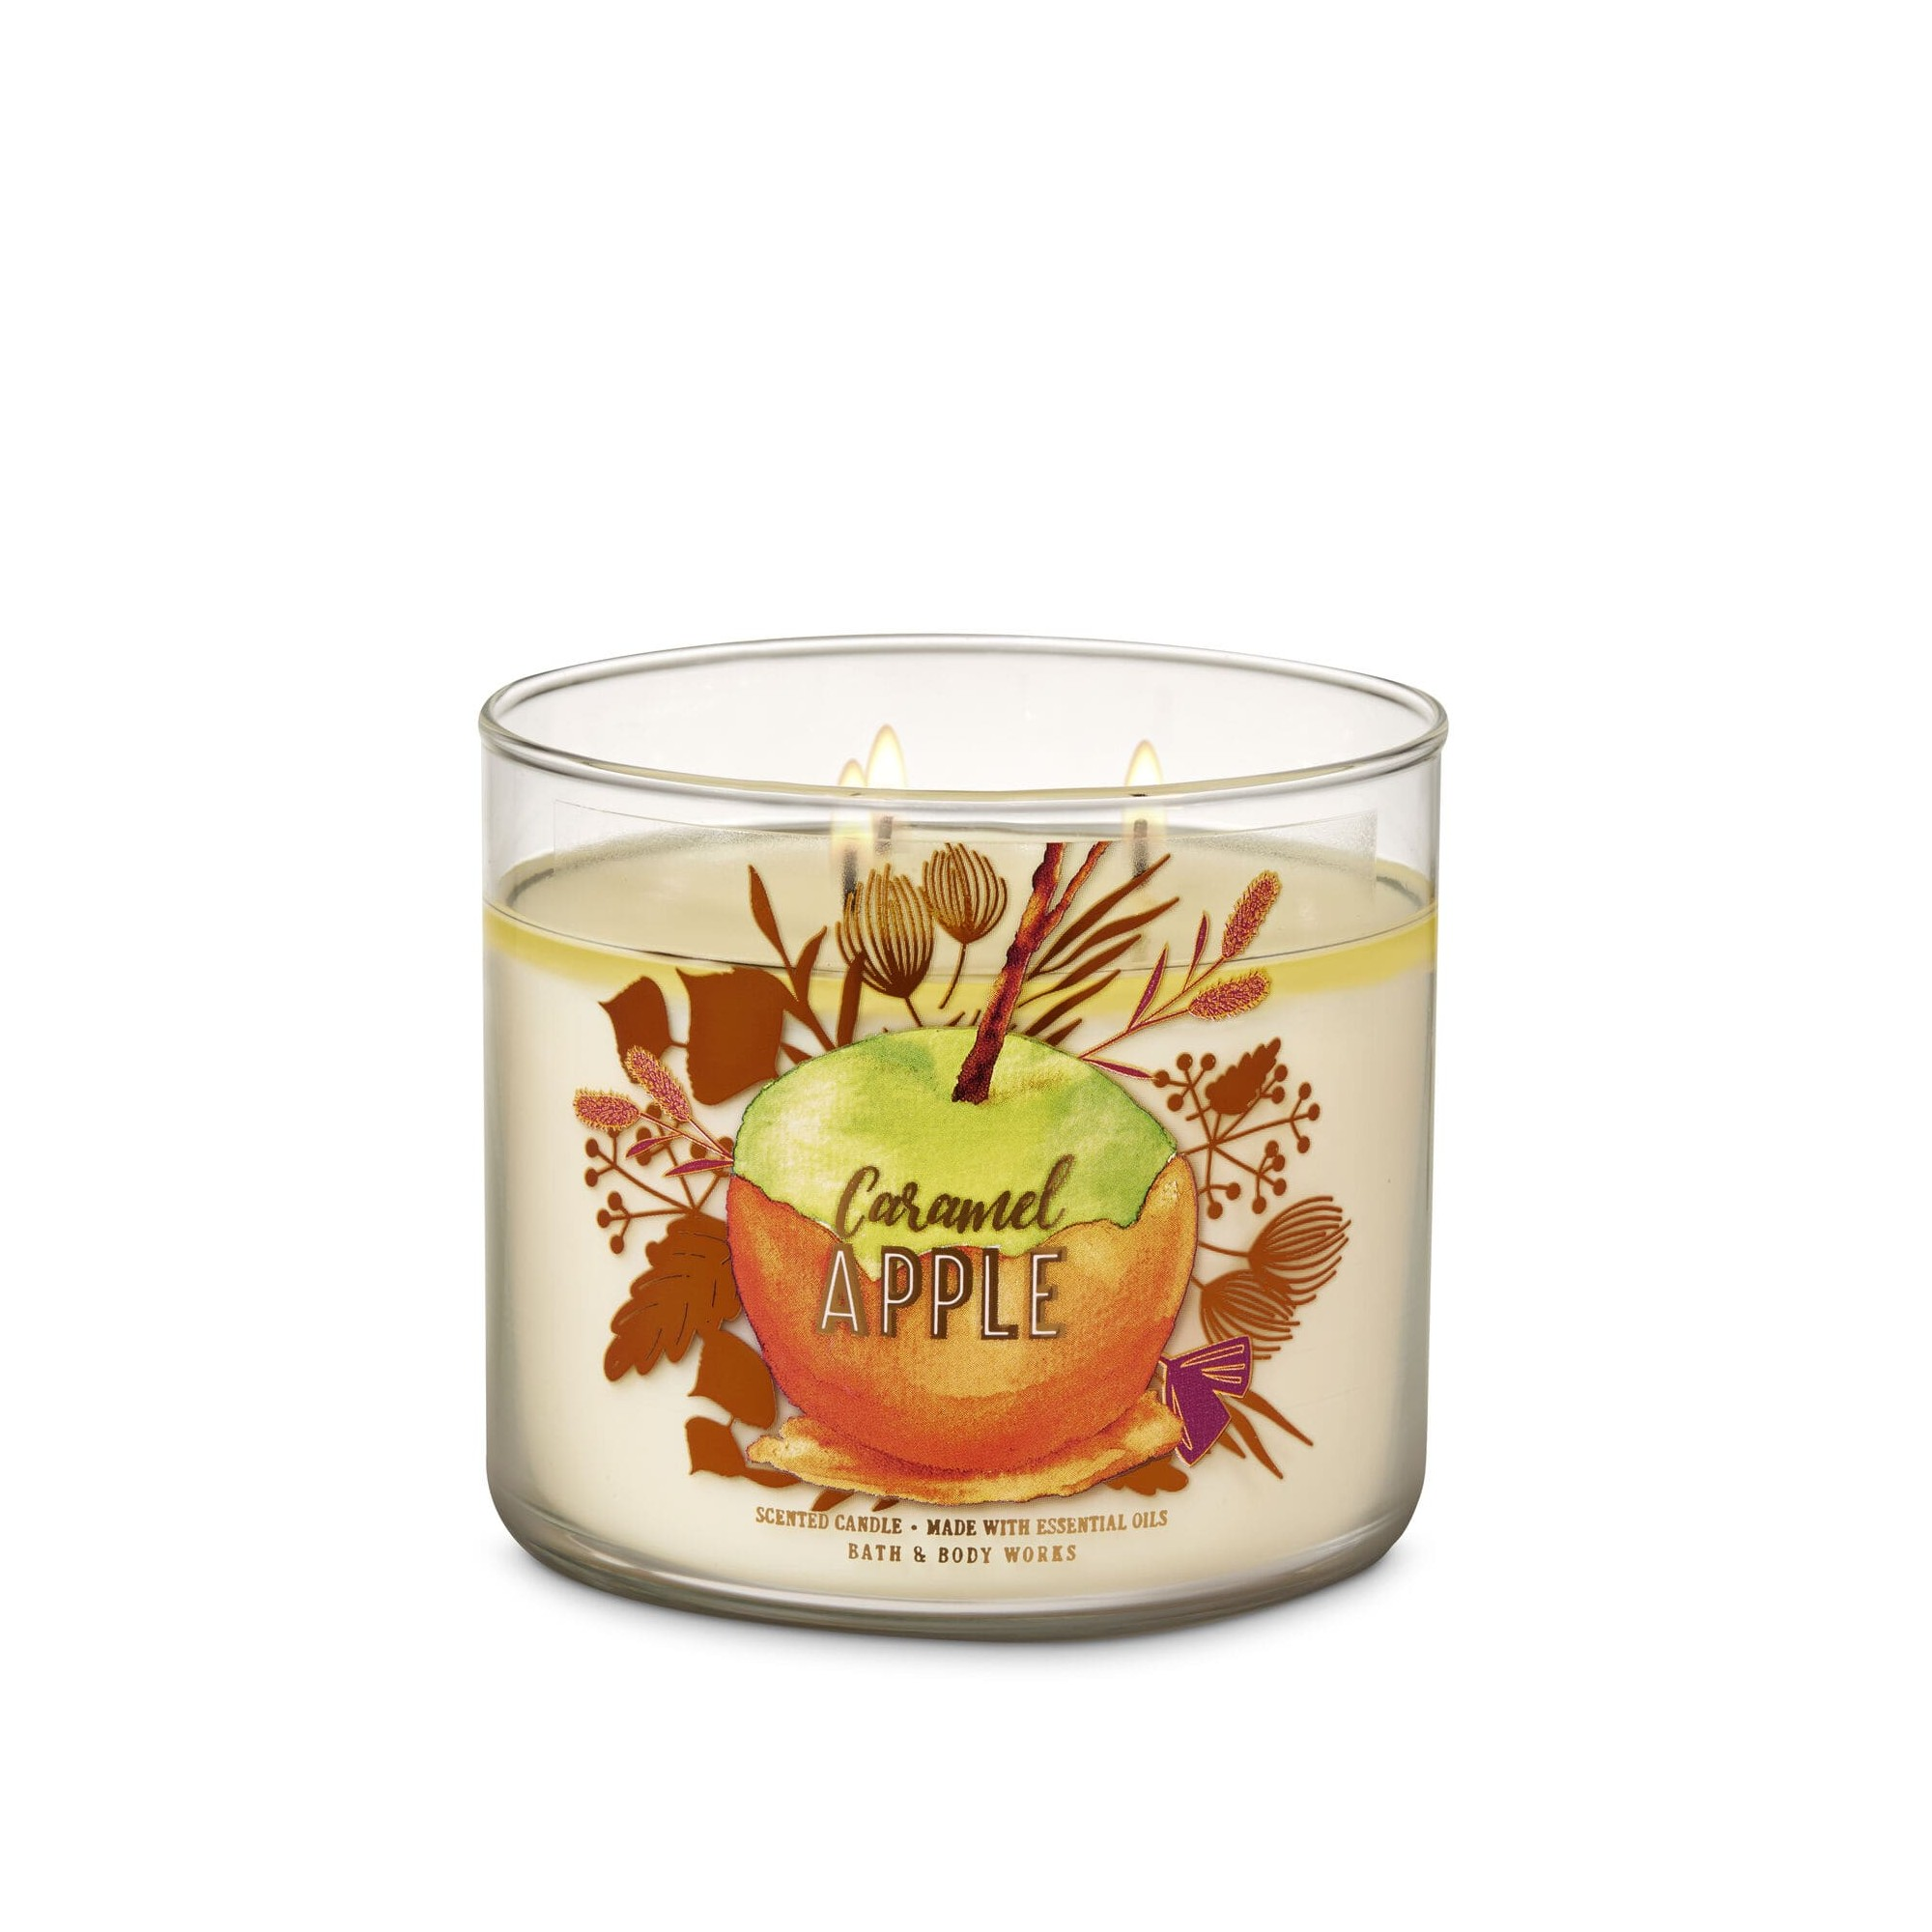 Bath & Body Works Caramel Apple 3 Wick Scented Candle